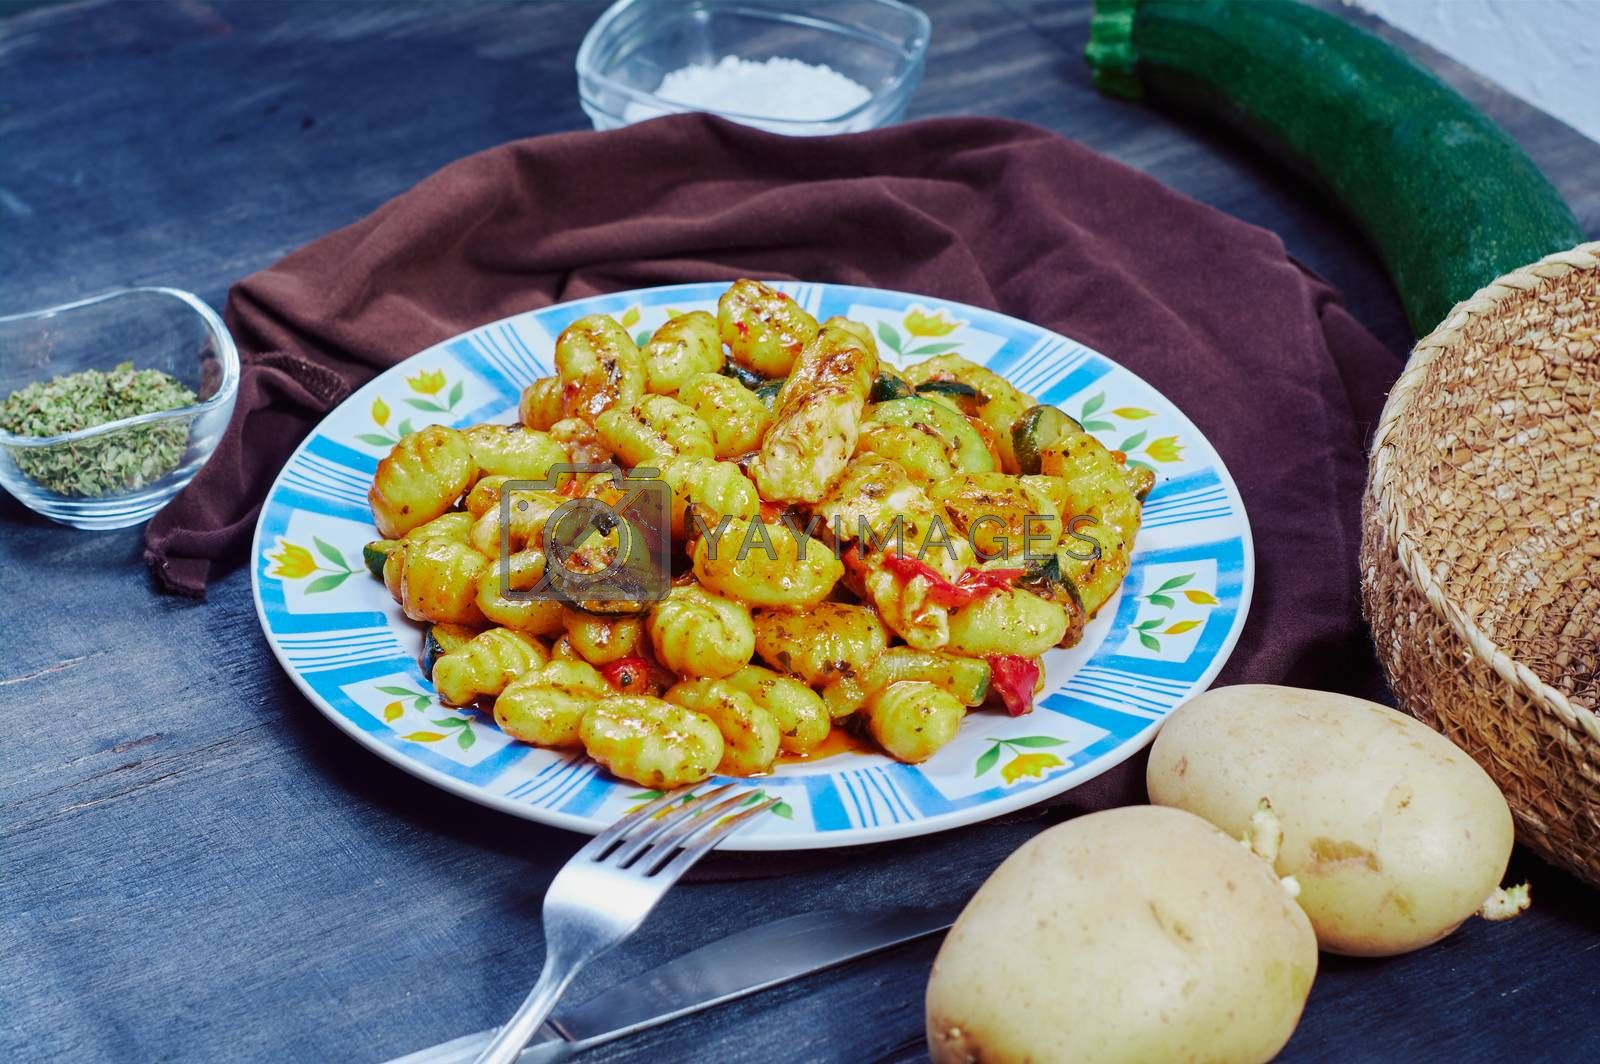 gnocchi with chicken and vegetables by Prf_photo